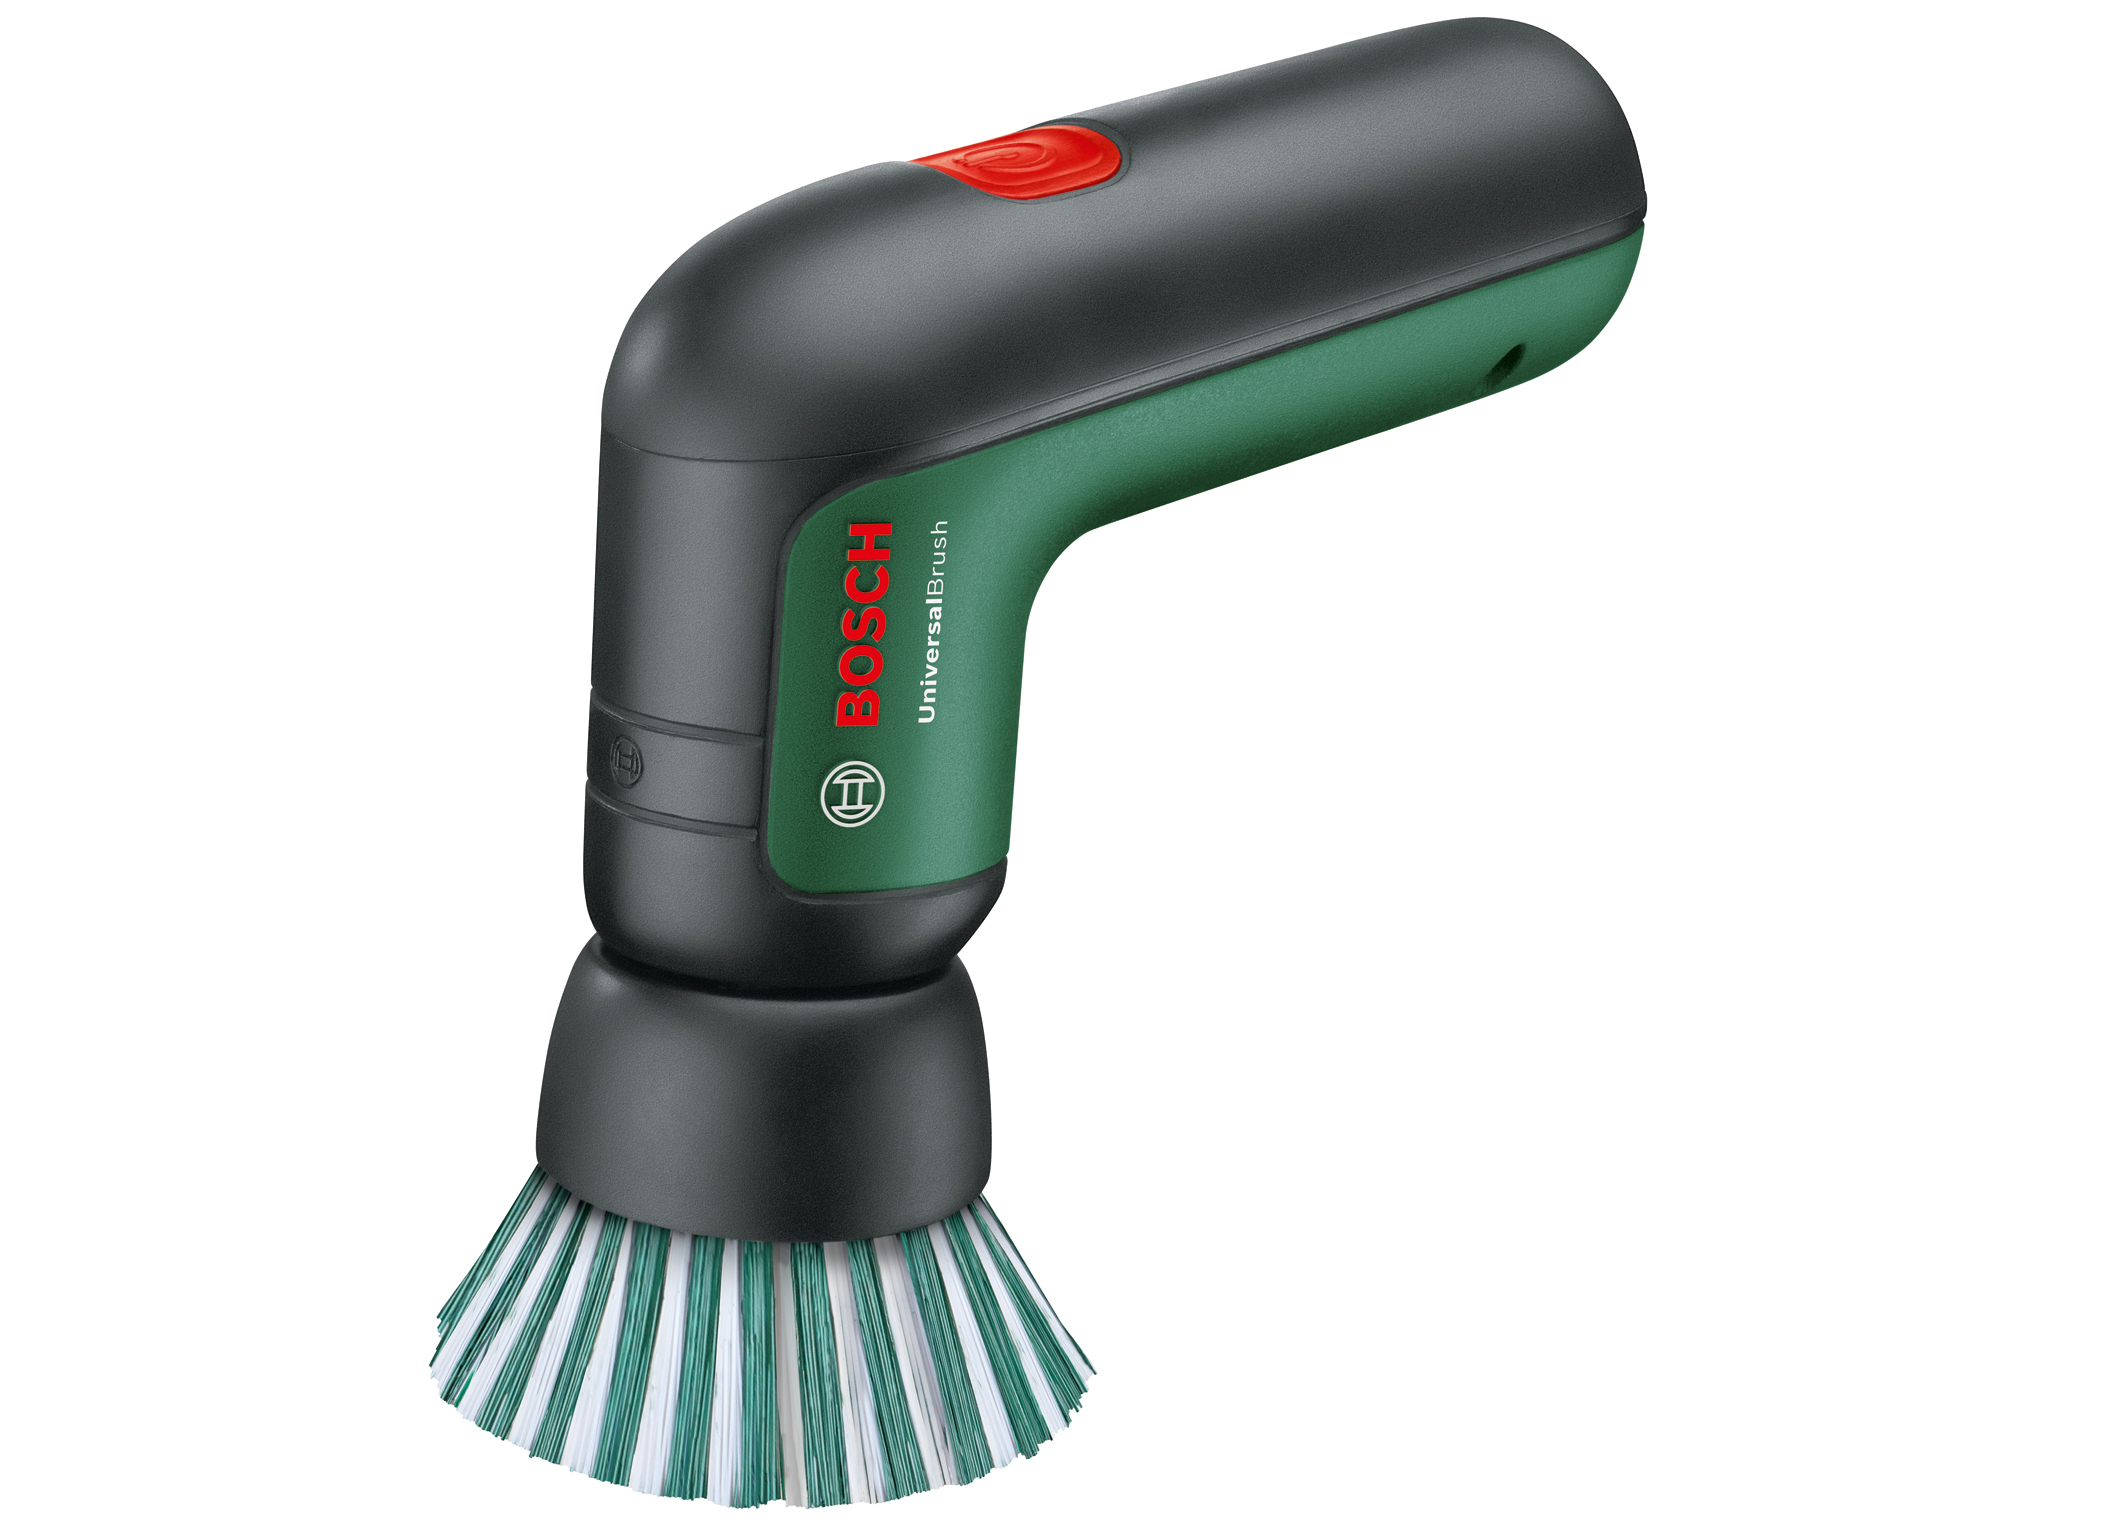 Powerful against stubborn dirt: UniversalBrush – cordless cleaning brush from Bosch